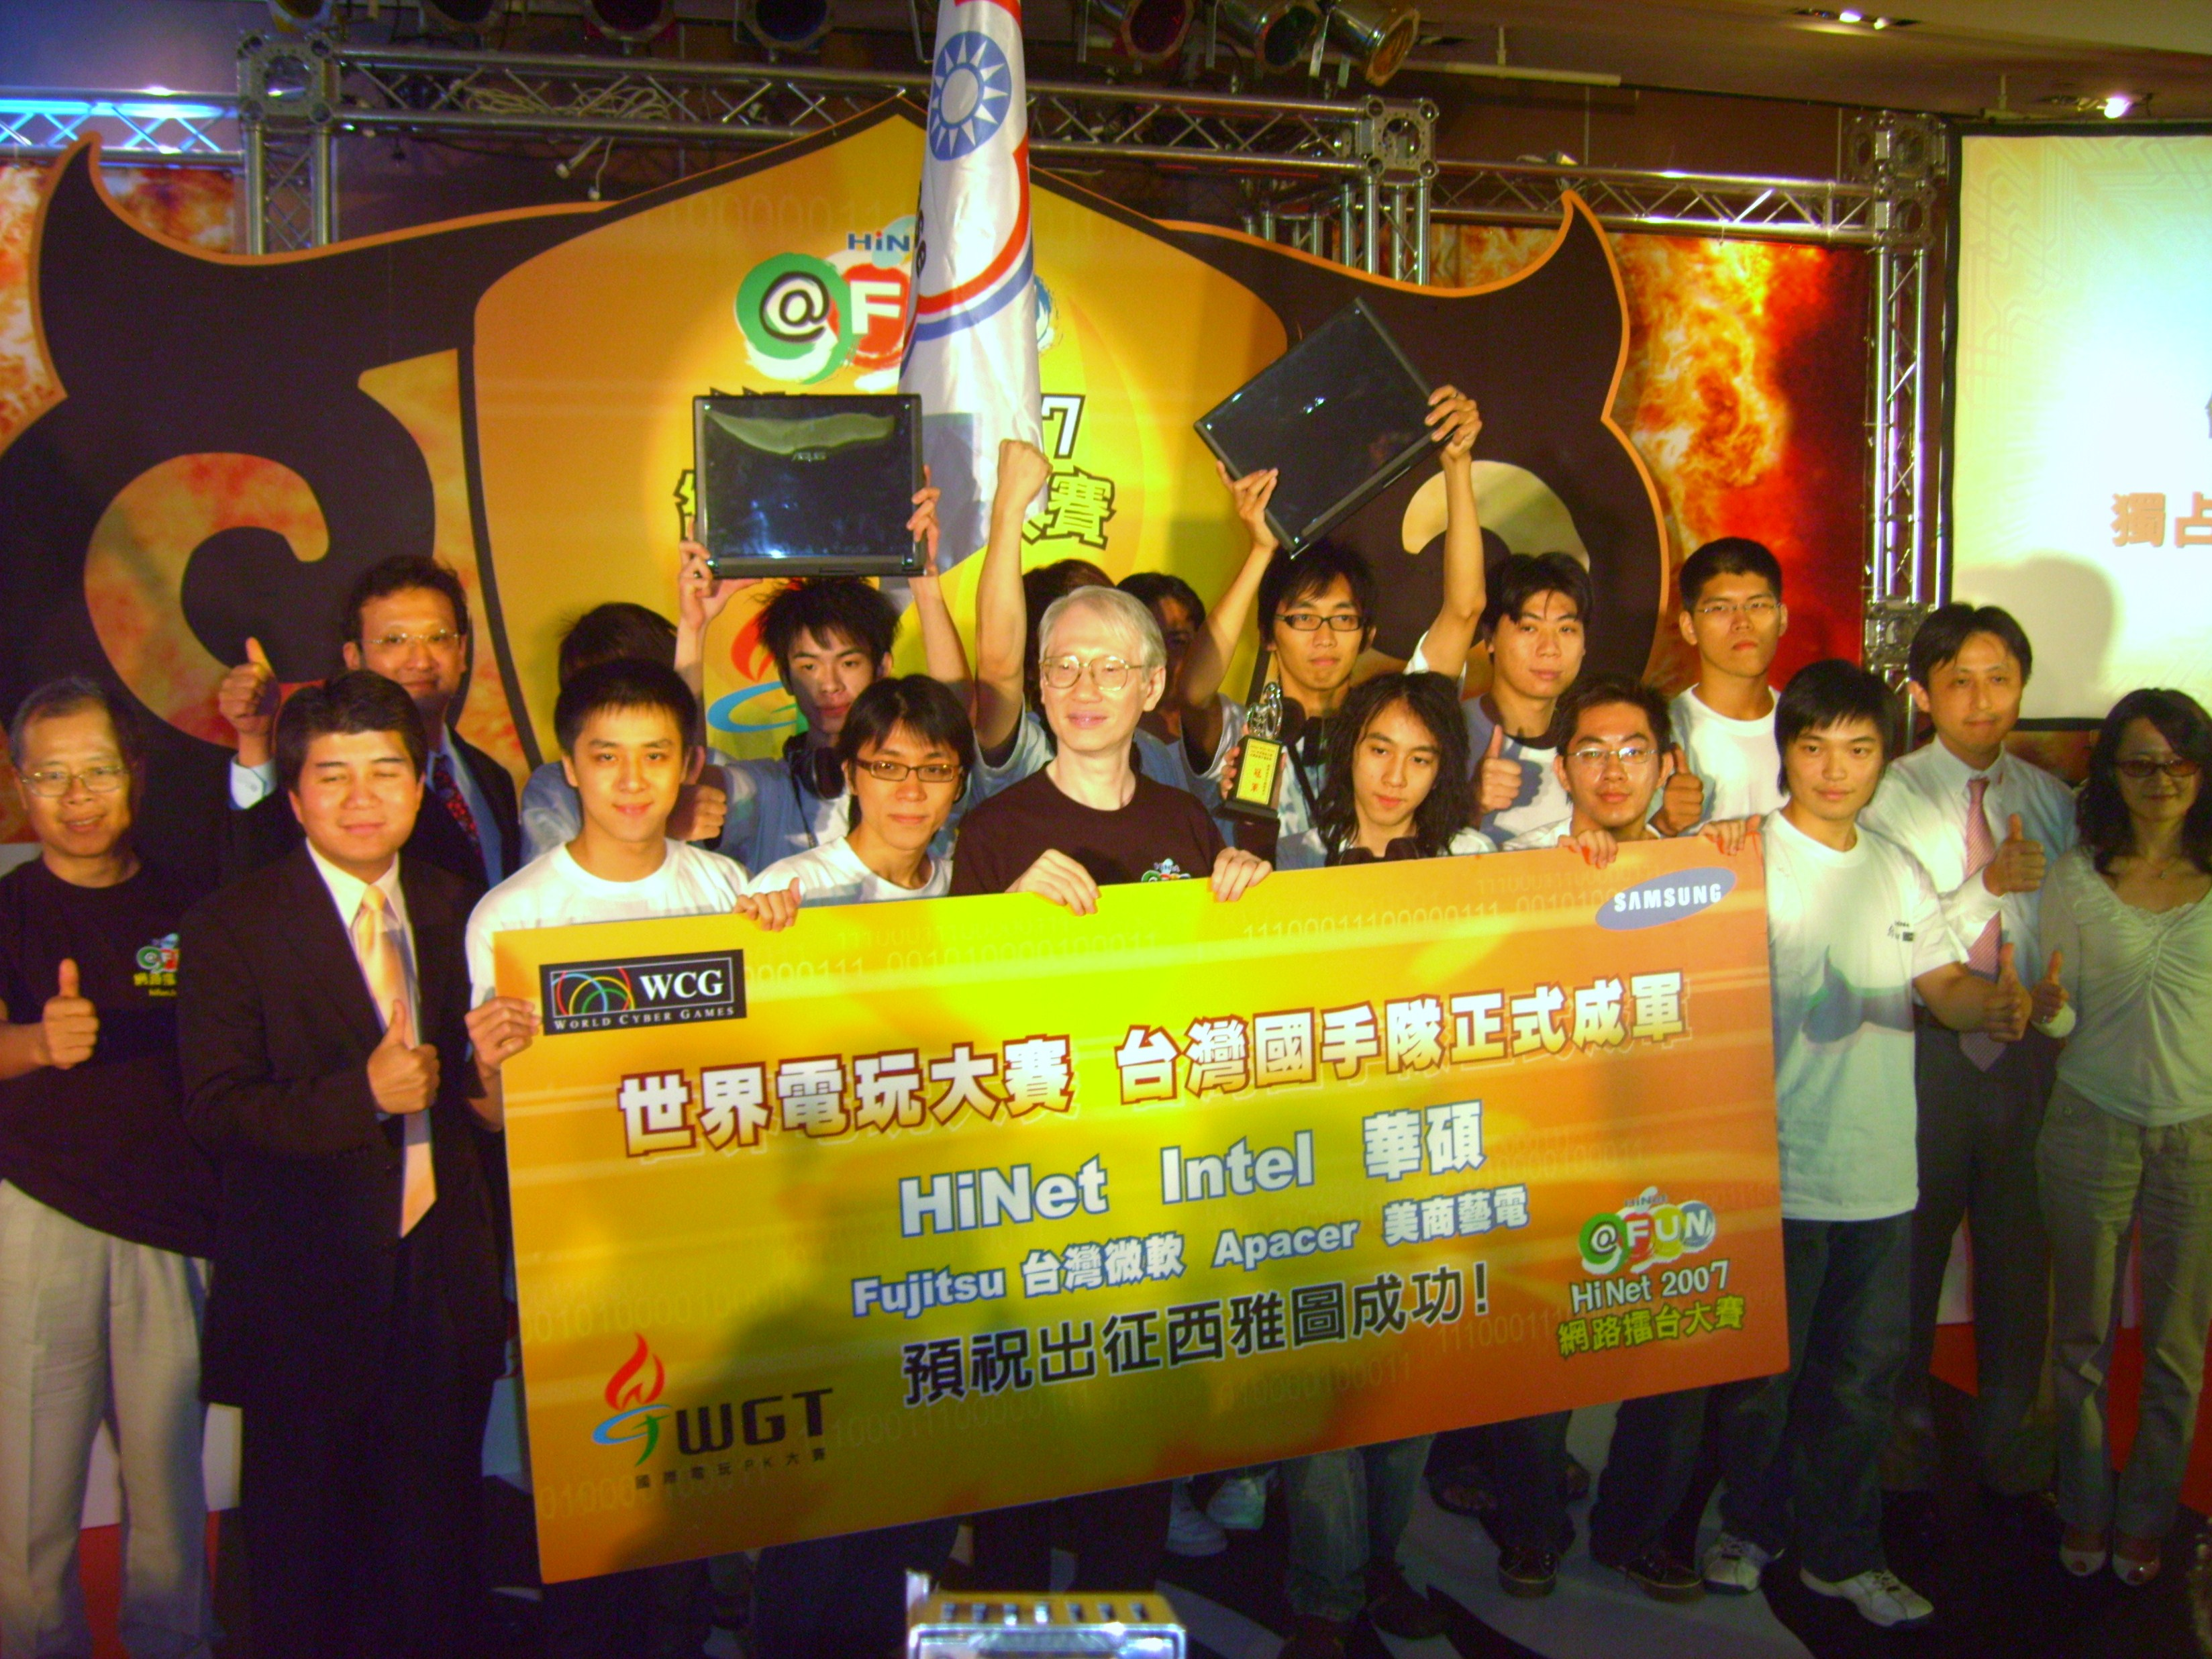 2007 HiNet, WCG, and WGT 3-in-1 Taiwan Gaming Athletes Qualification